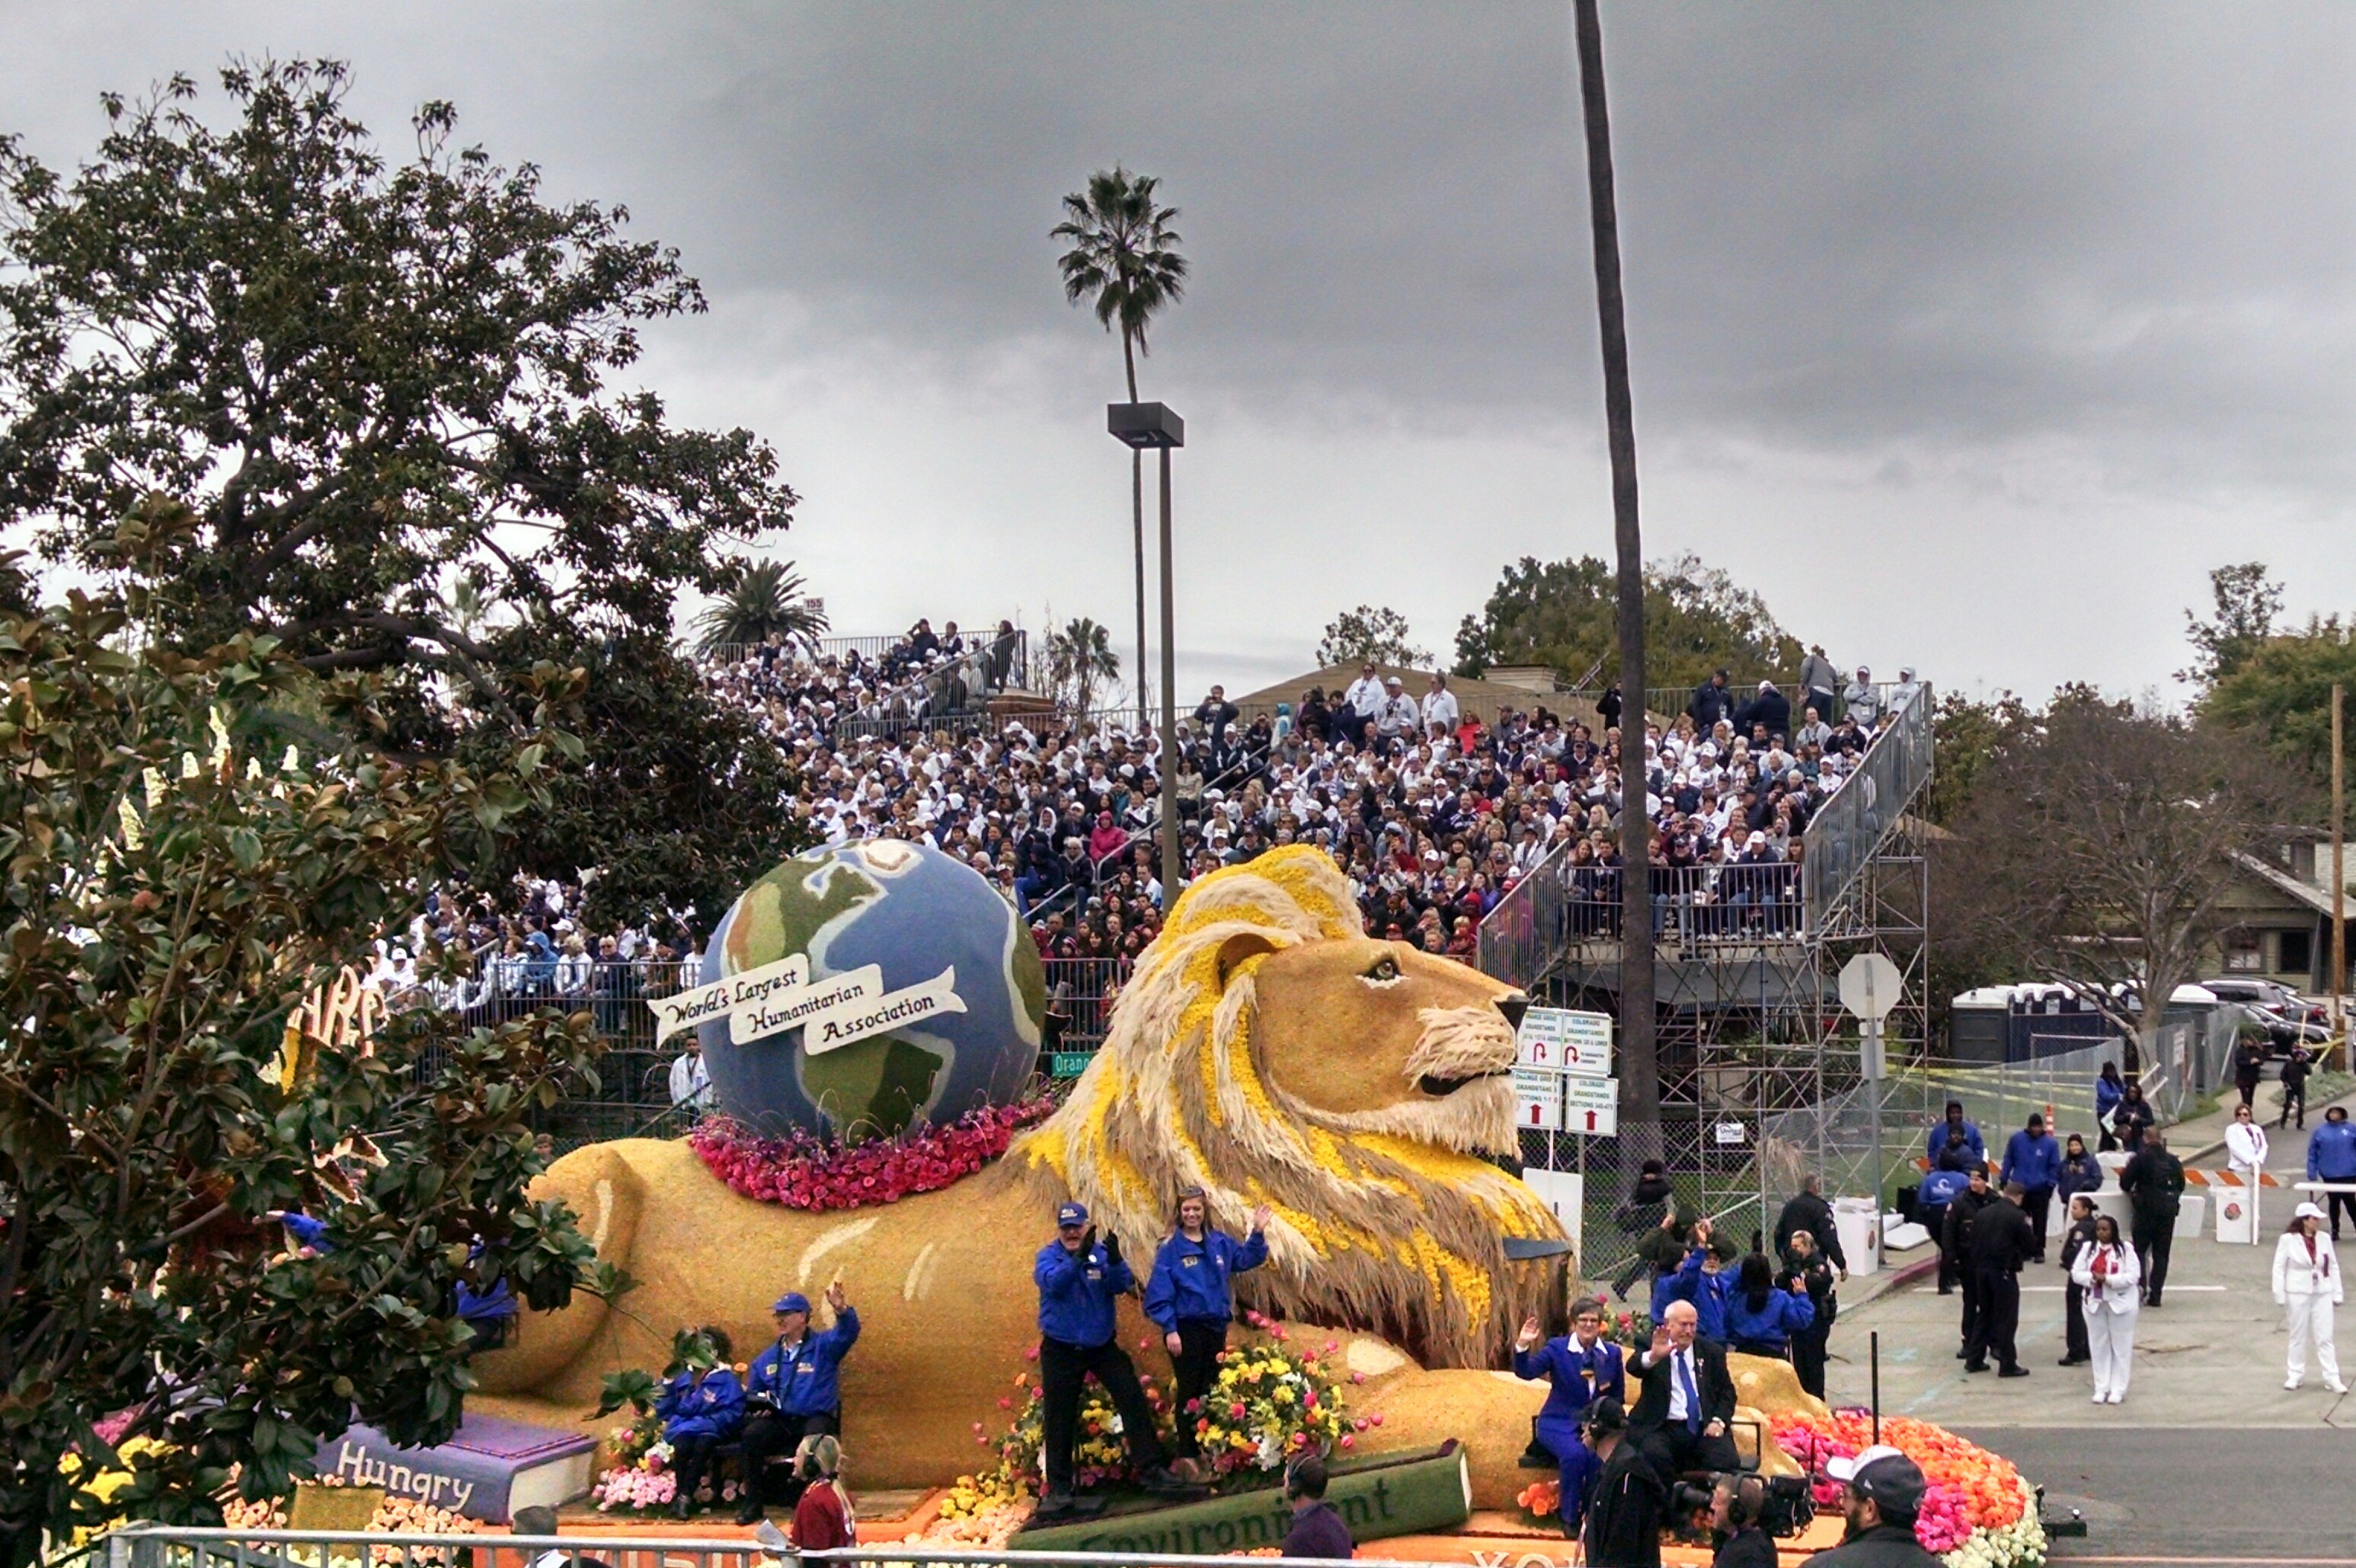 A Penn State float at the Rose Bowl parade